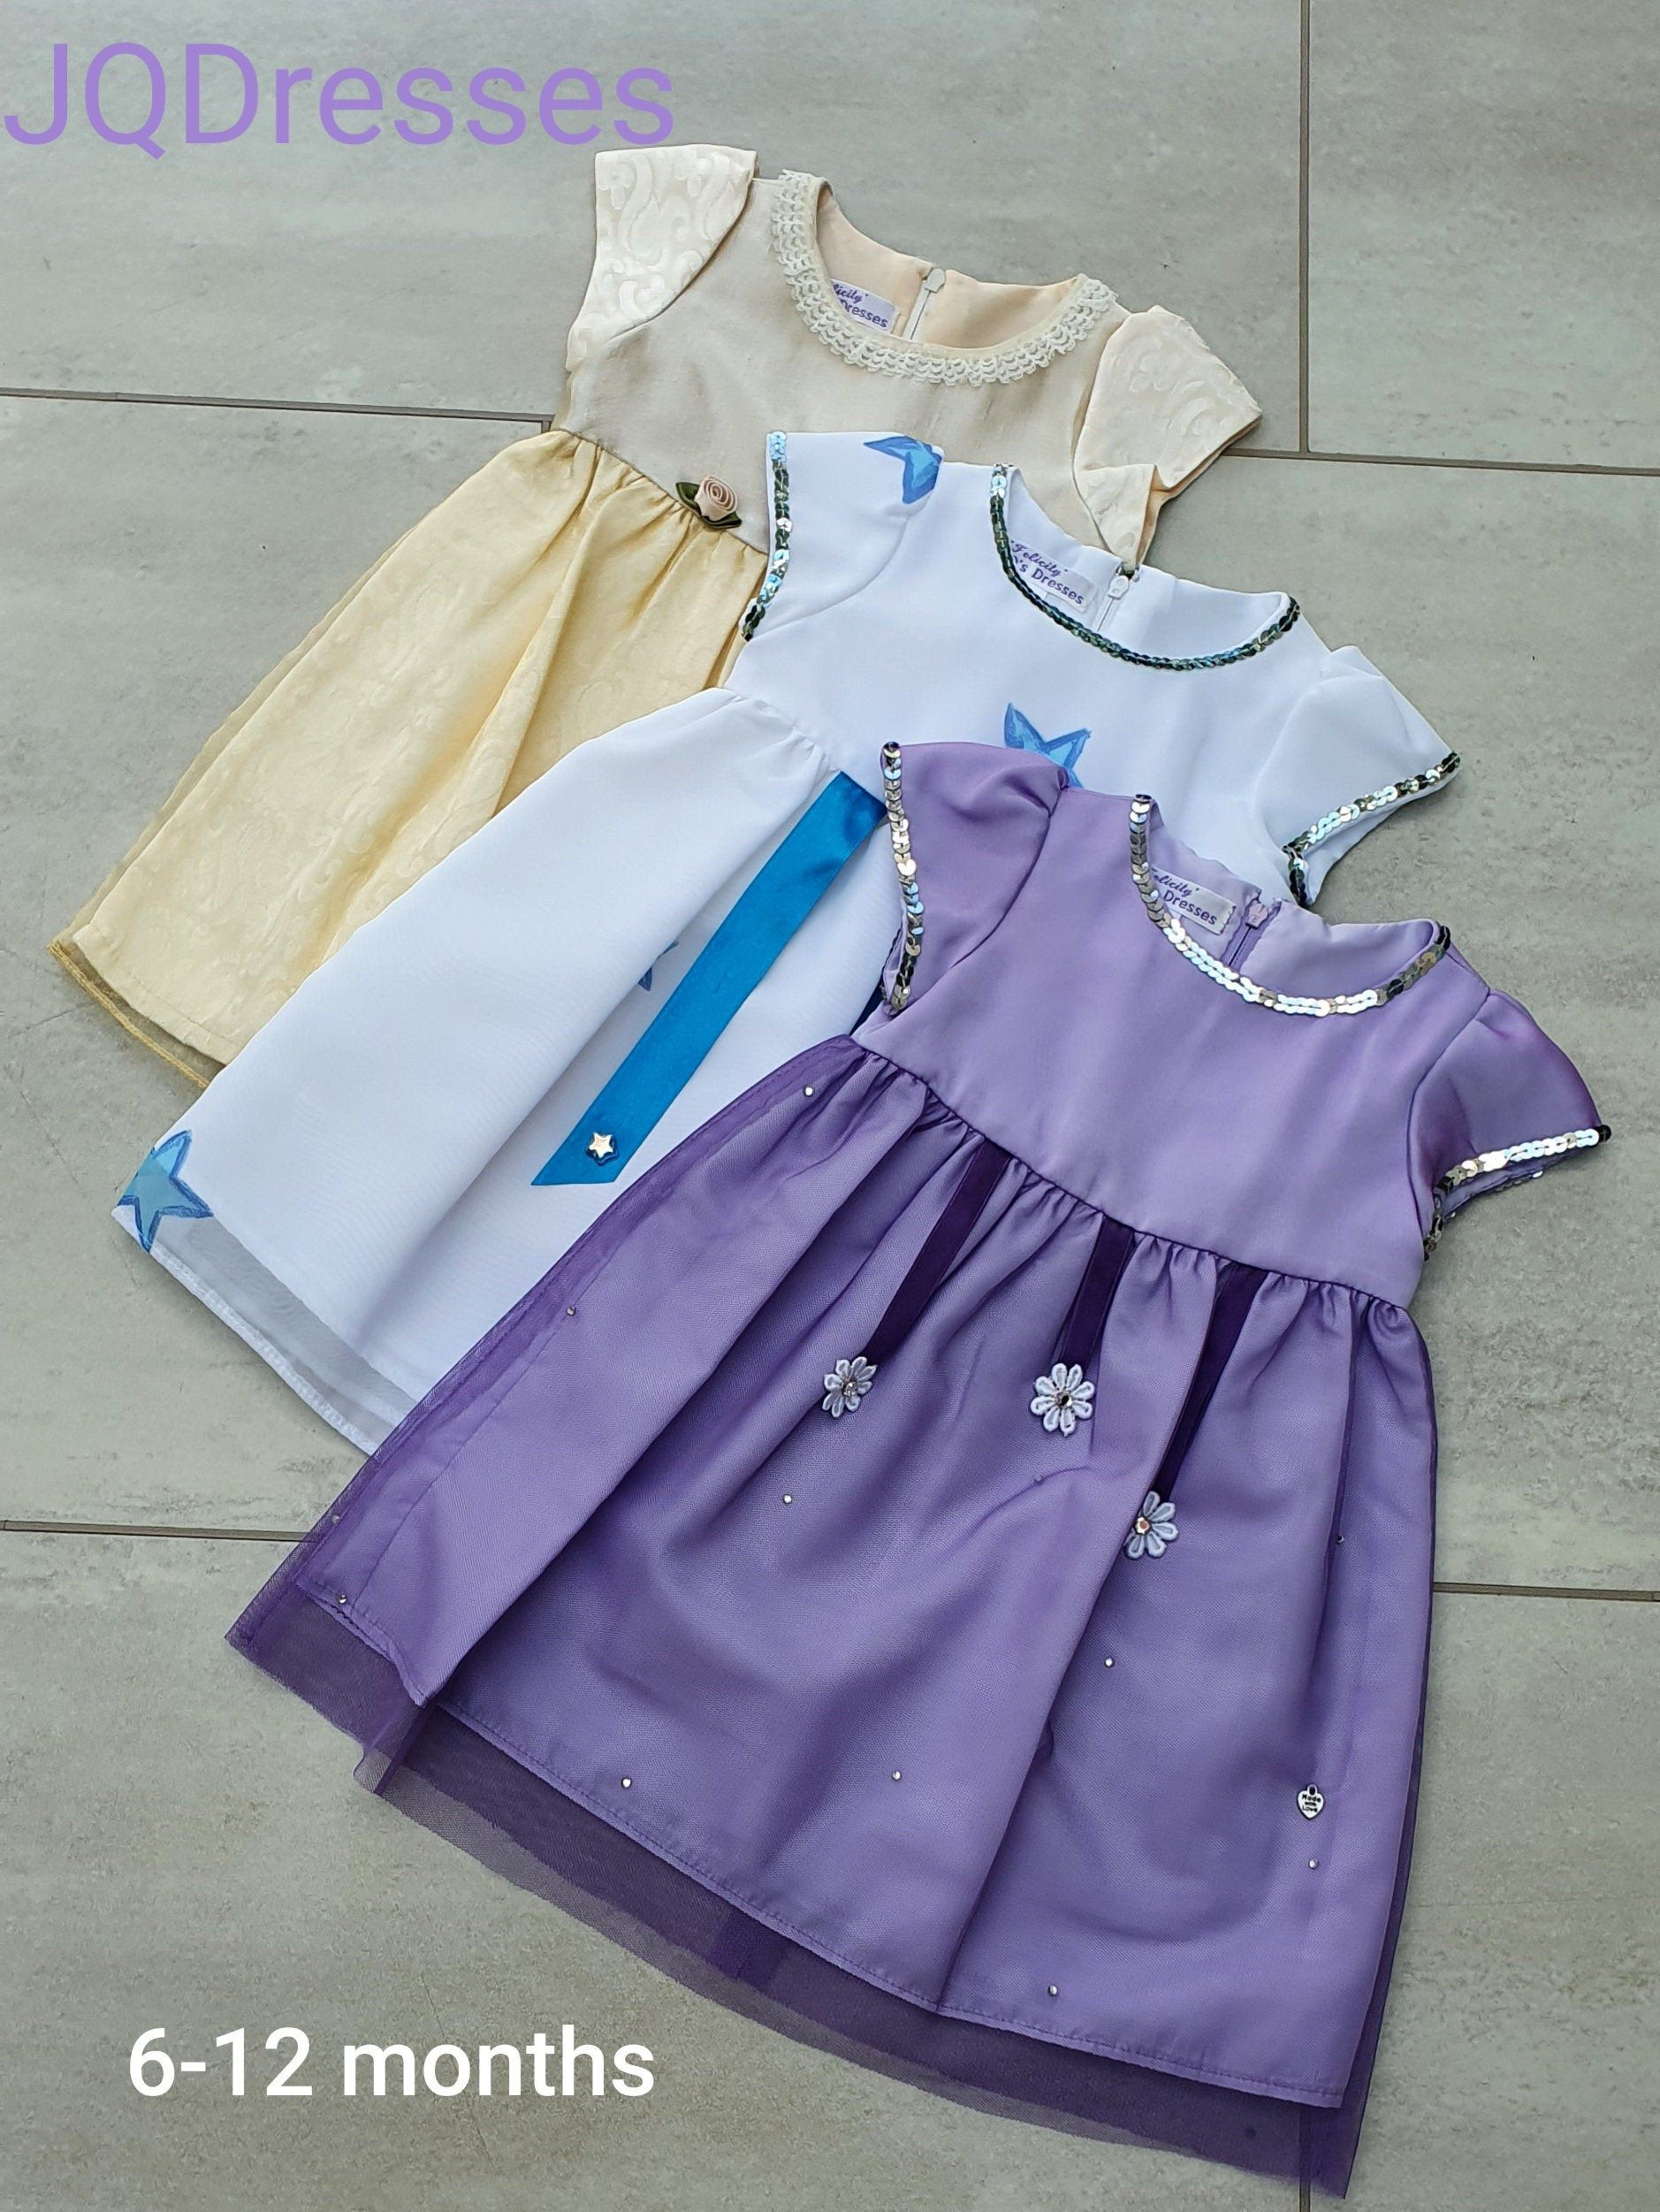 Infant Felicity Occasion Dresses, Baby Girl Party Dresses, Baby Wedding Wear, Baby Day Dresses.